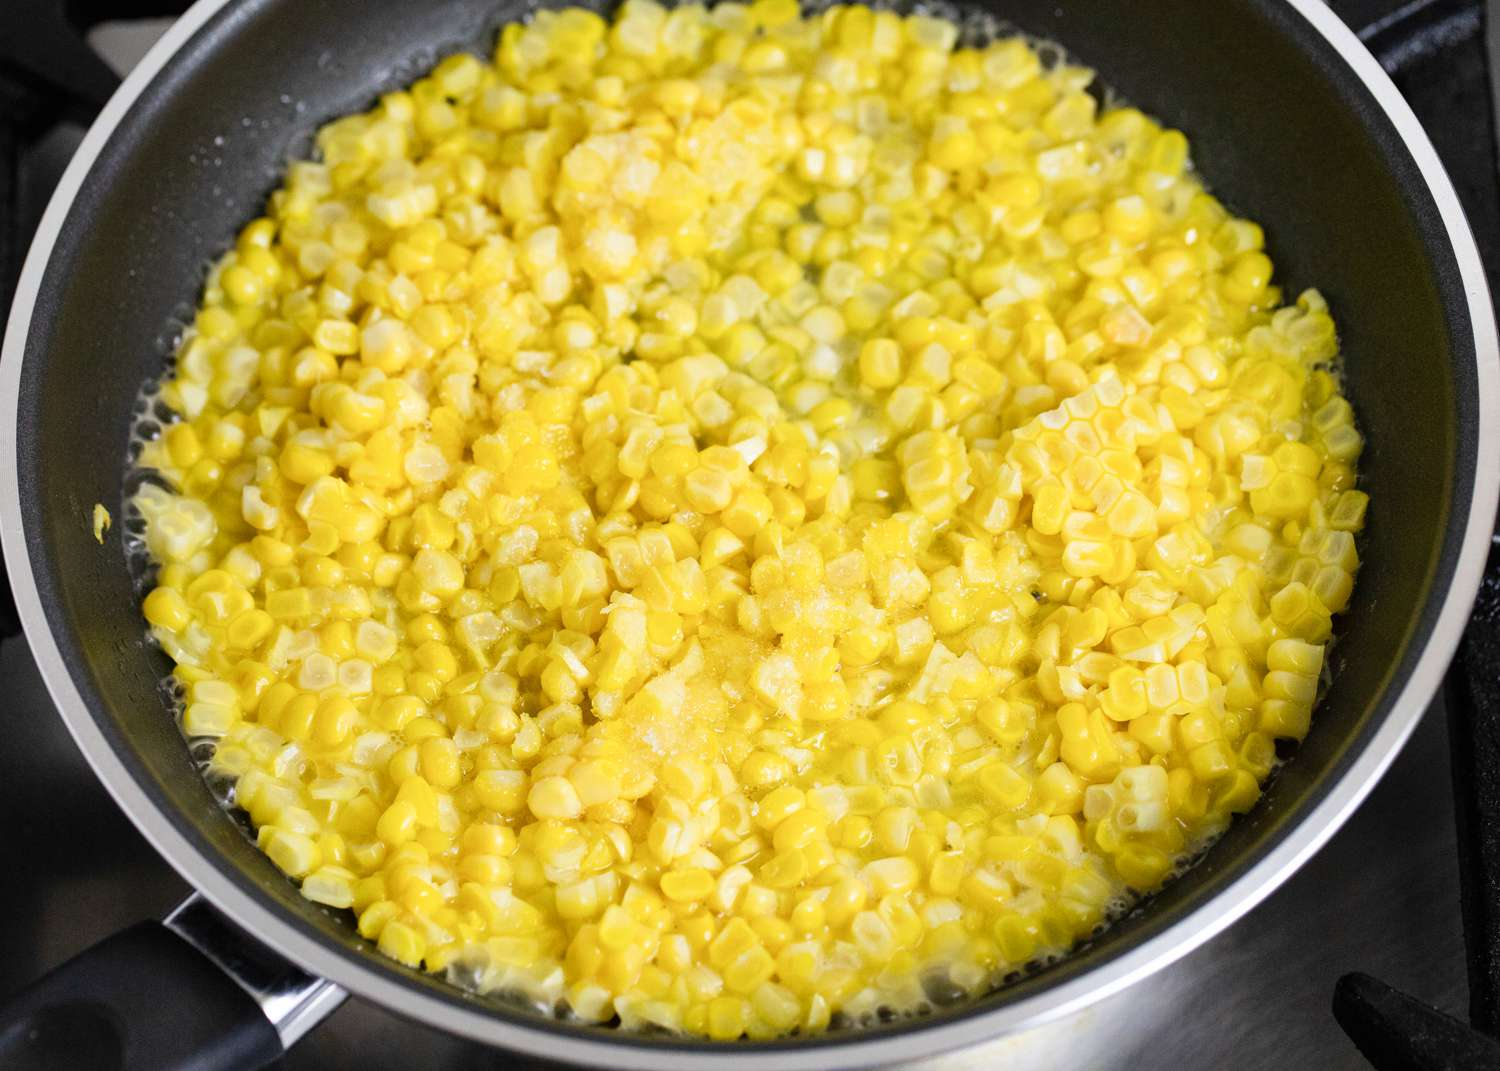 Corn kernels cooking in a saucepan with water and sugar